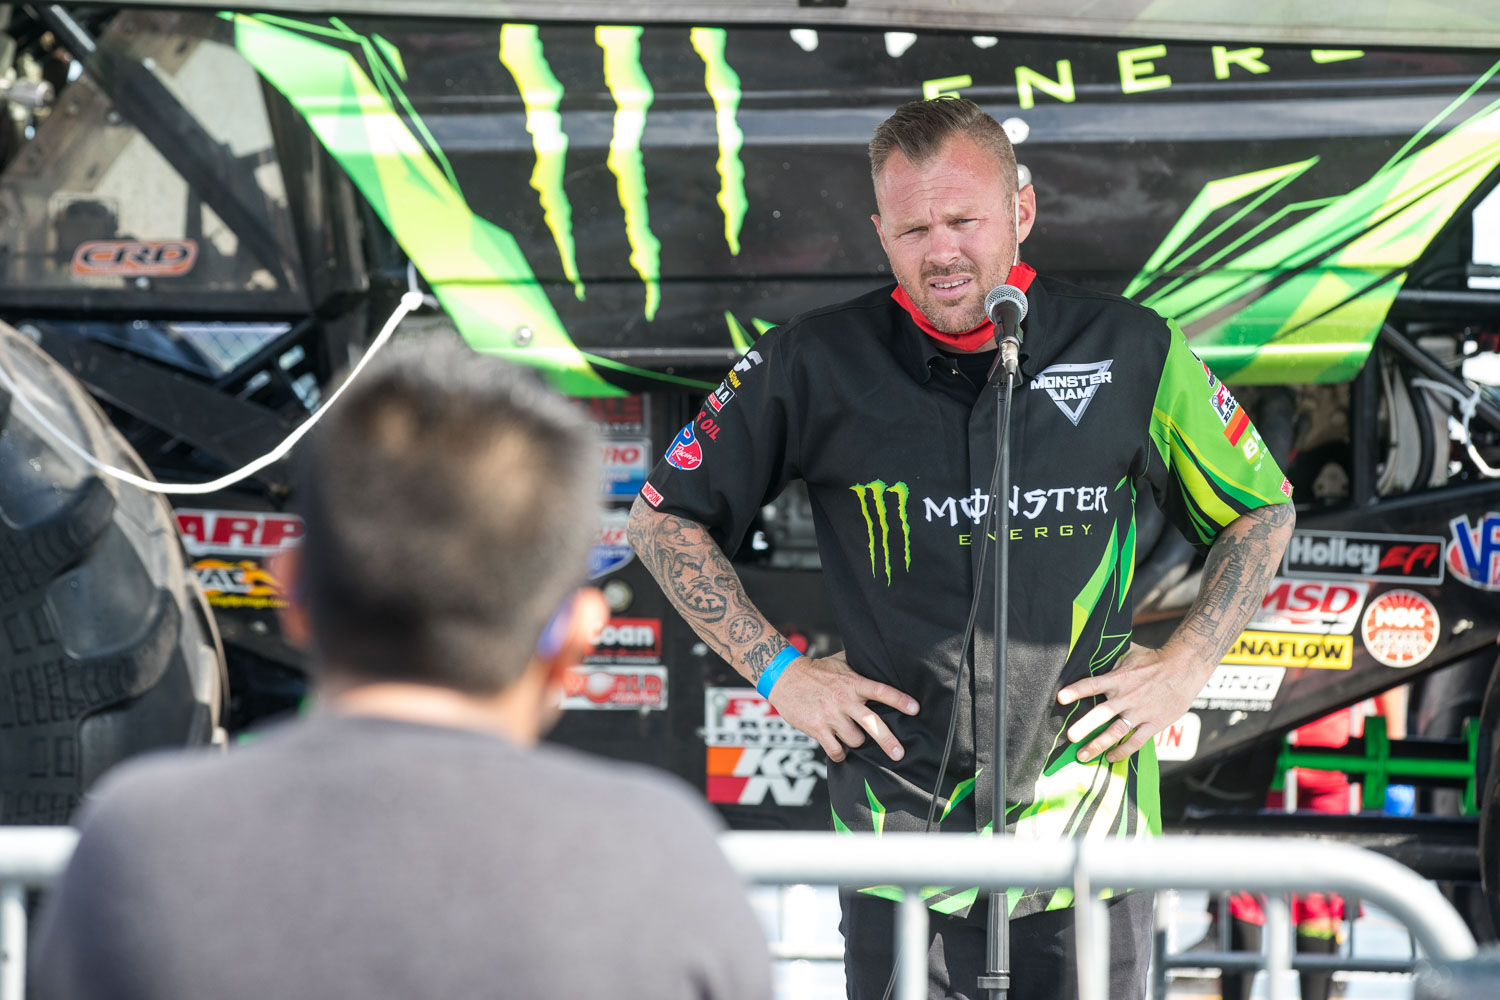 Todd LeDuc, driver of the Monster Energy truck participates in a Q&A session with fans during the Monster Jam Pit Party prior to the main event at GEHA Field at Arrowhead on Saturday evening, June 26, 2021.